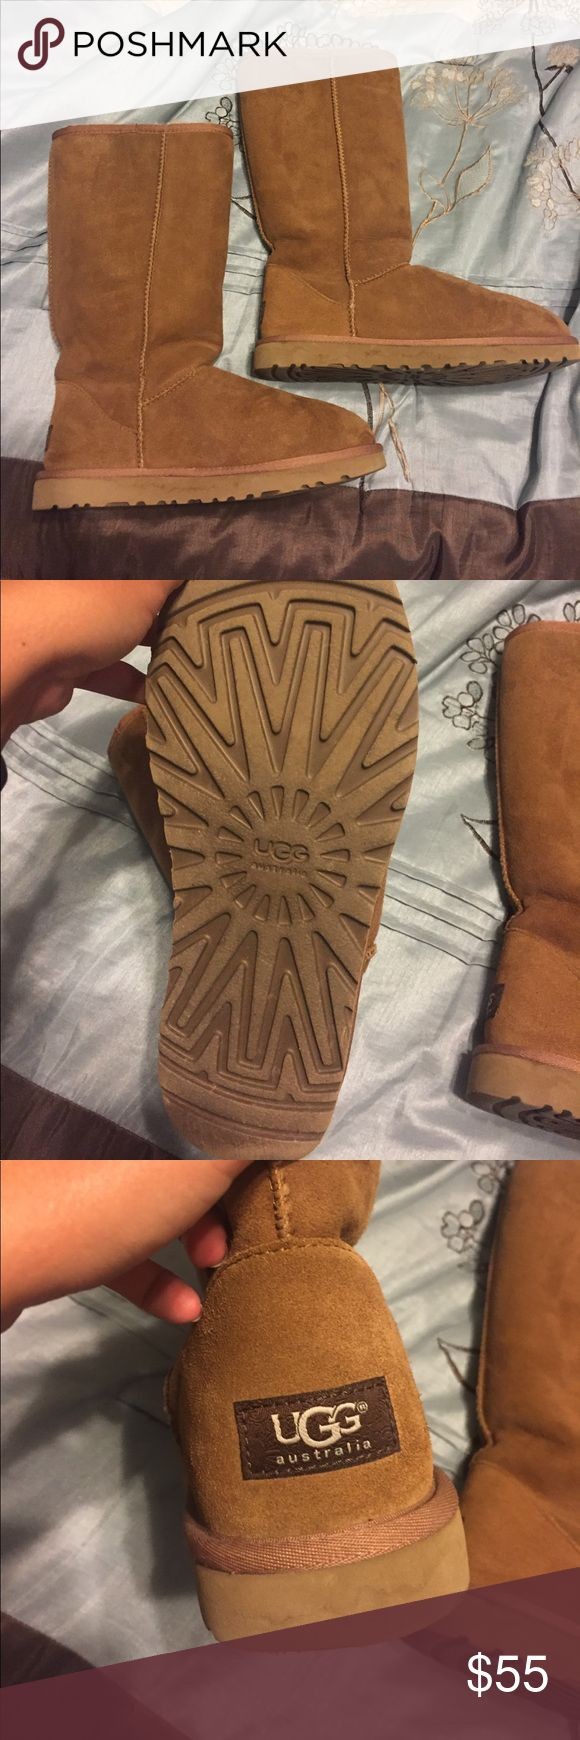 Tall brown Ugg boots These boots are real Ugg brand. They are in good condition and only have a little damage on around the bottom soles. UGG Shoes Winter & Rain Boots